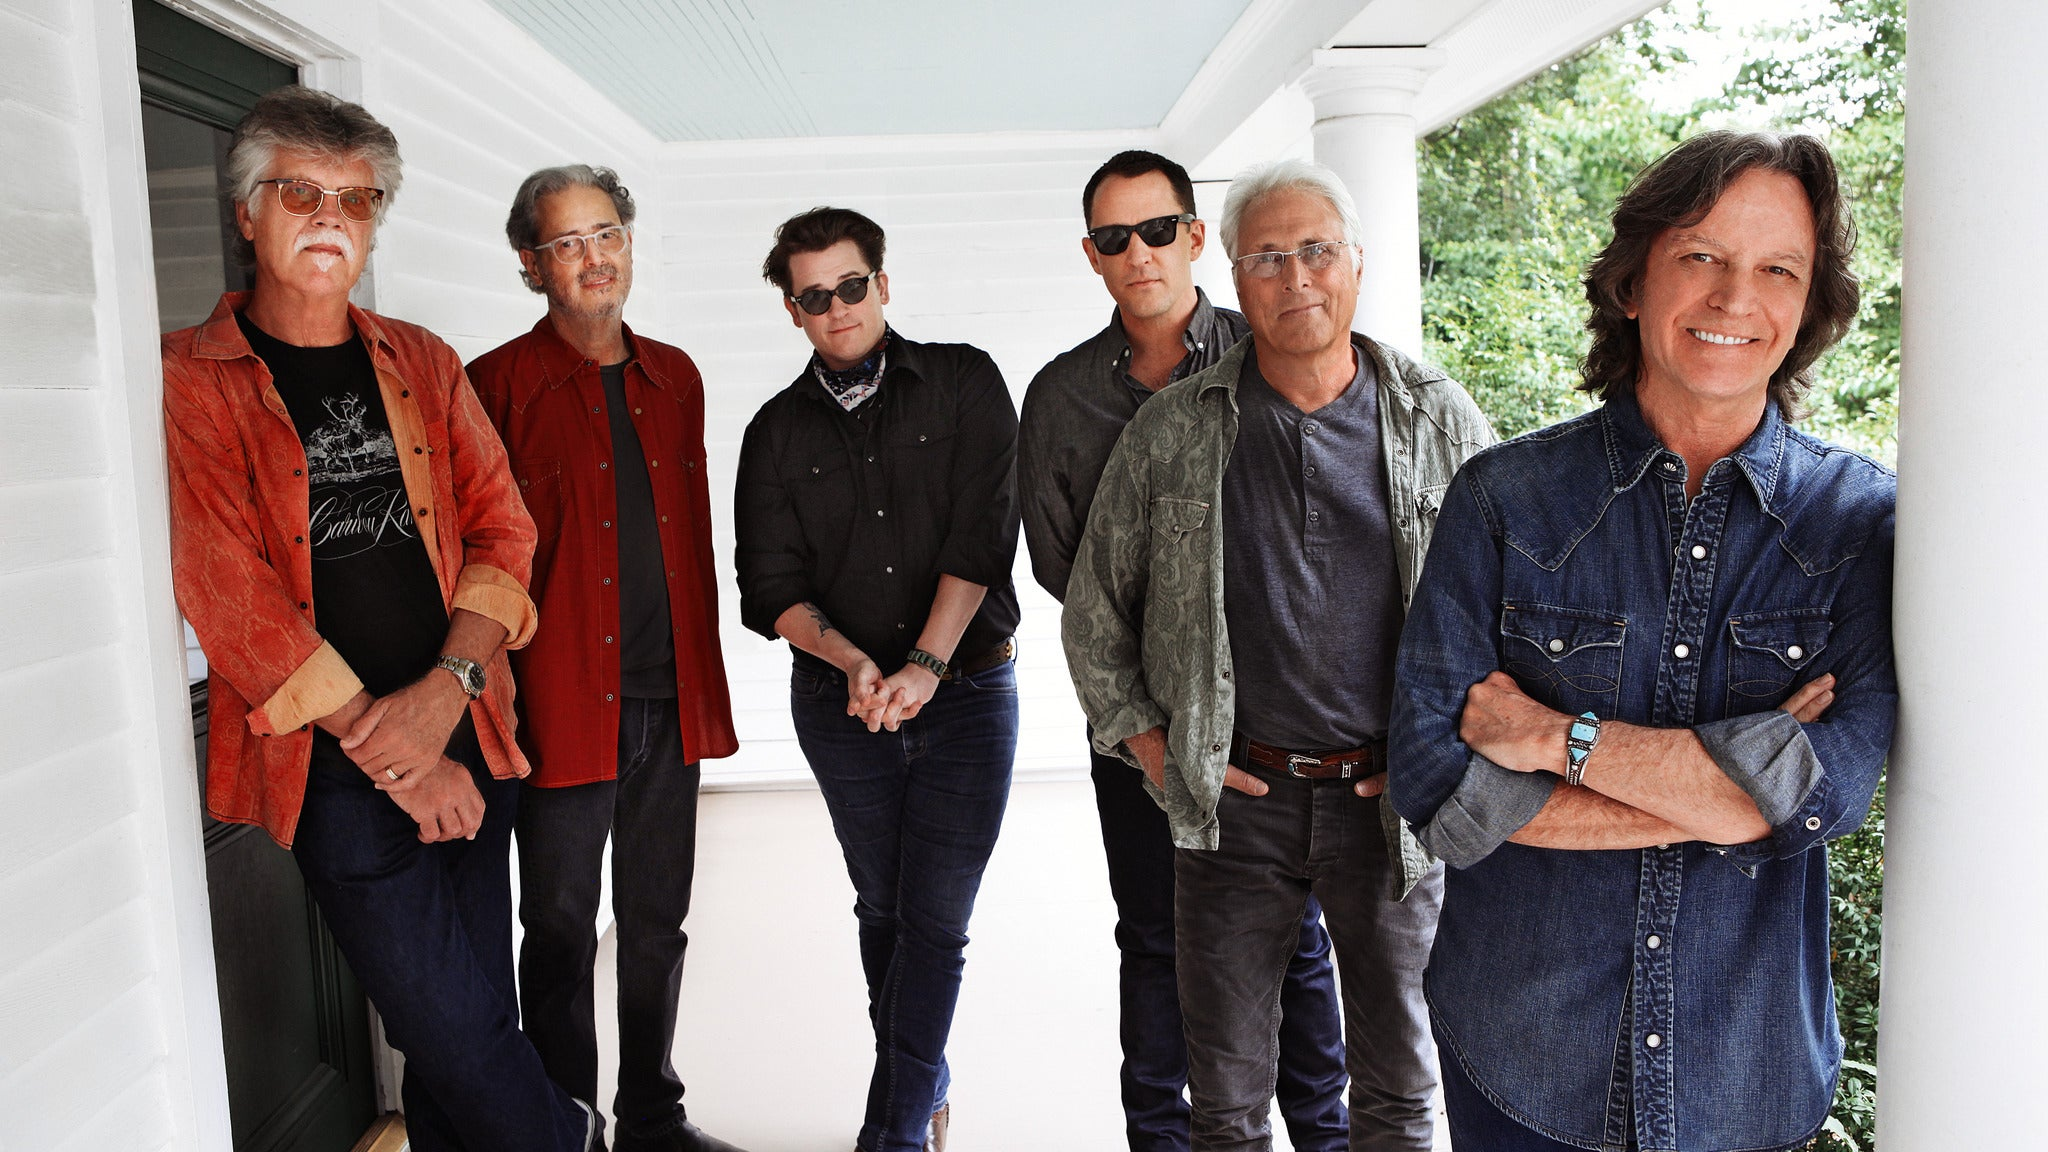 AEG & 97.3 KBCO Present Nitty Gritty Dirt Band pre-sale passcode for show tickets in Denver, CO (Paramount Theatre)